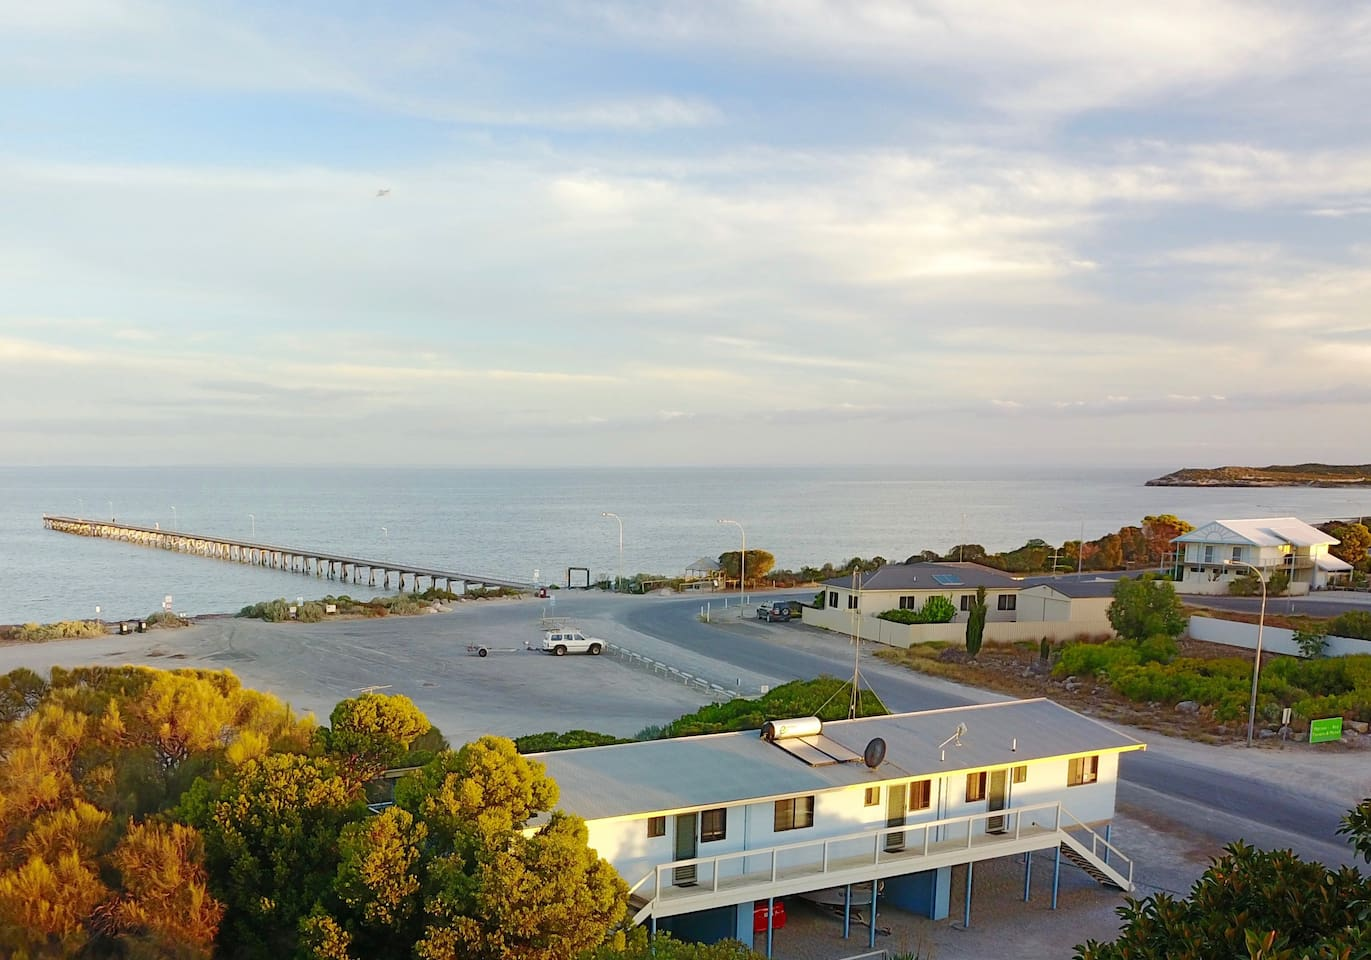 Our location looking towards the Marion Bay Jetty and Penguin Point. We have plenty of room onsite for undercover parking and boat storage.